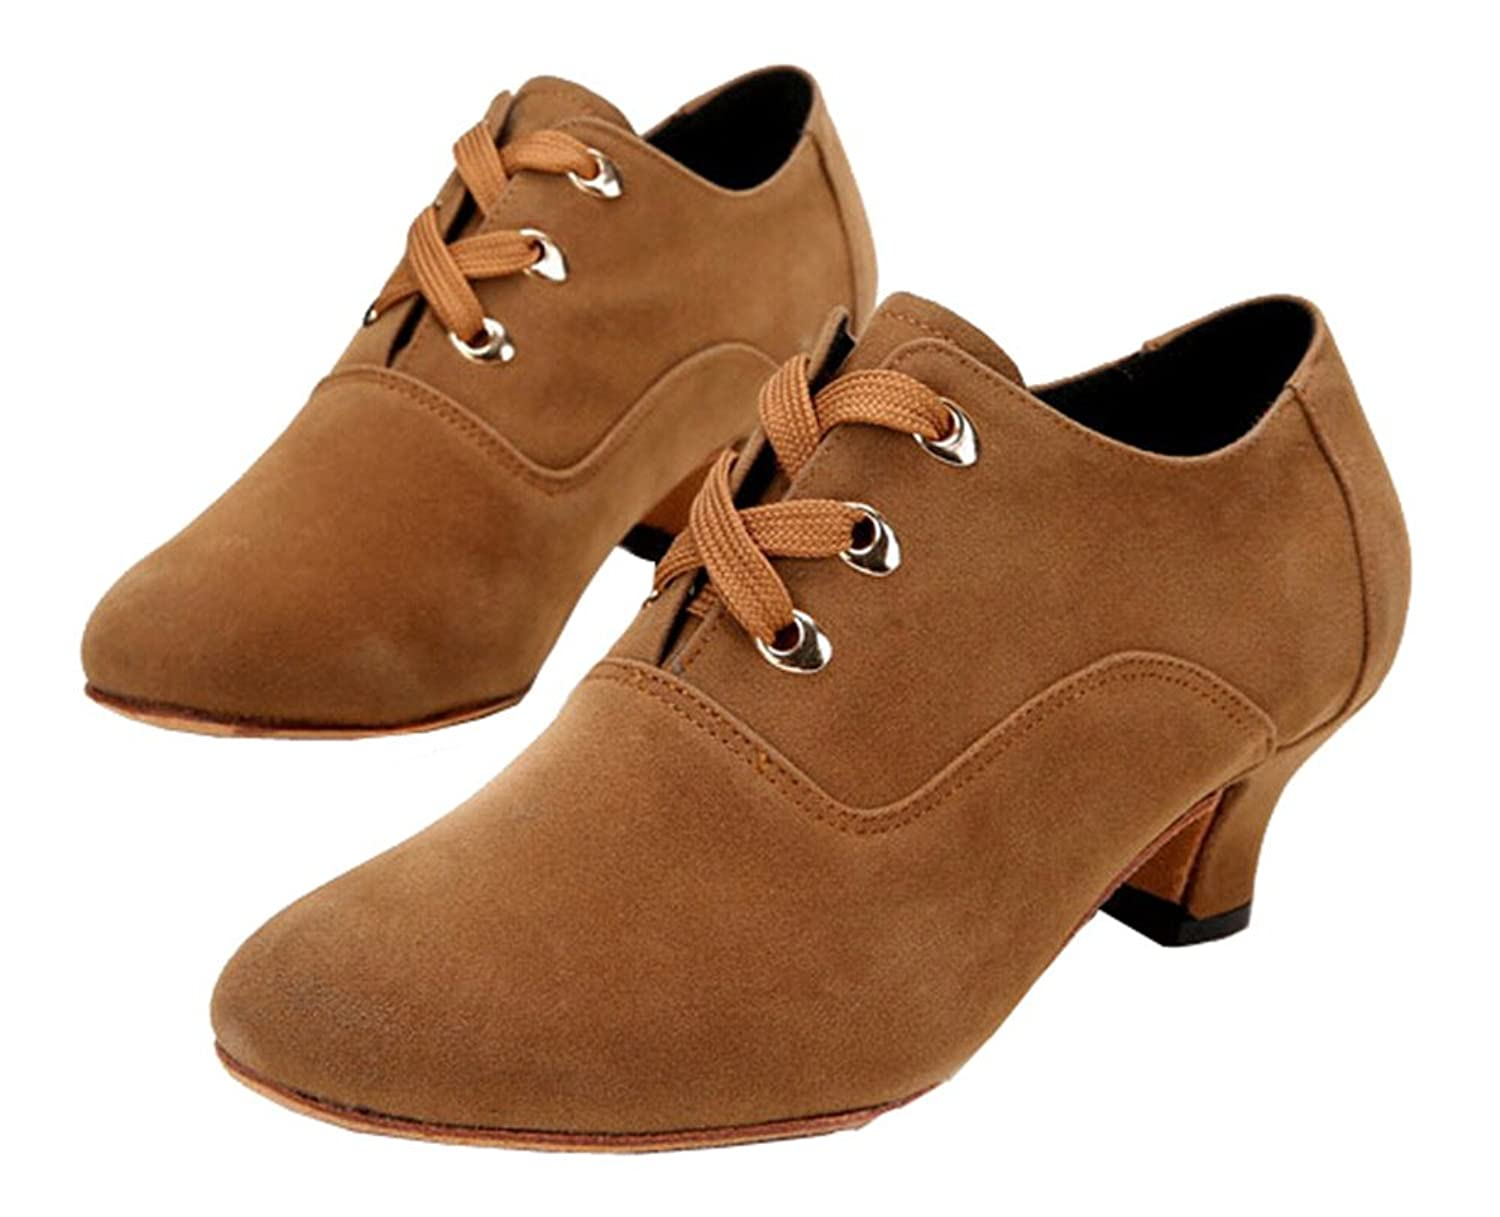 1940s Womens Shoe Styles Womens Modern Practice Social Dance Shoes Ankle Jazz Boots Lace-up $33.50 AT vintagedancer.com